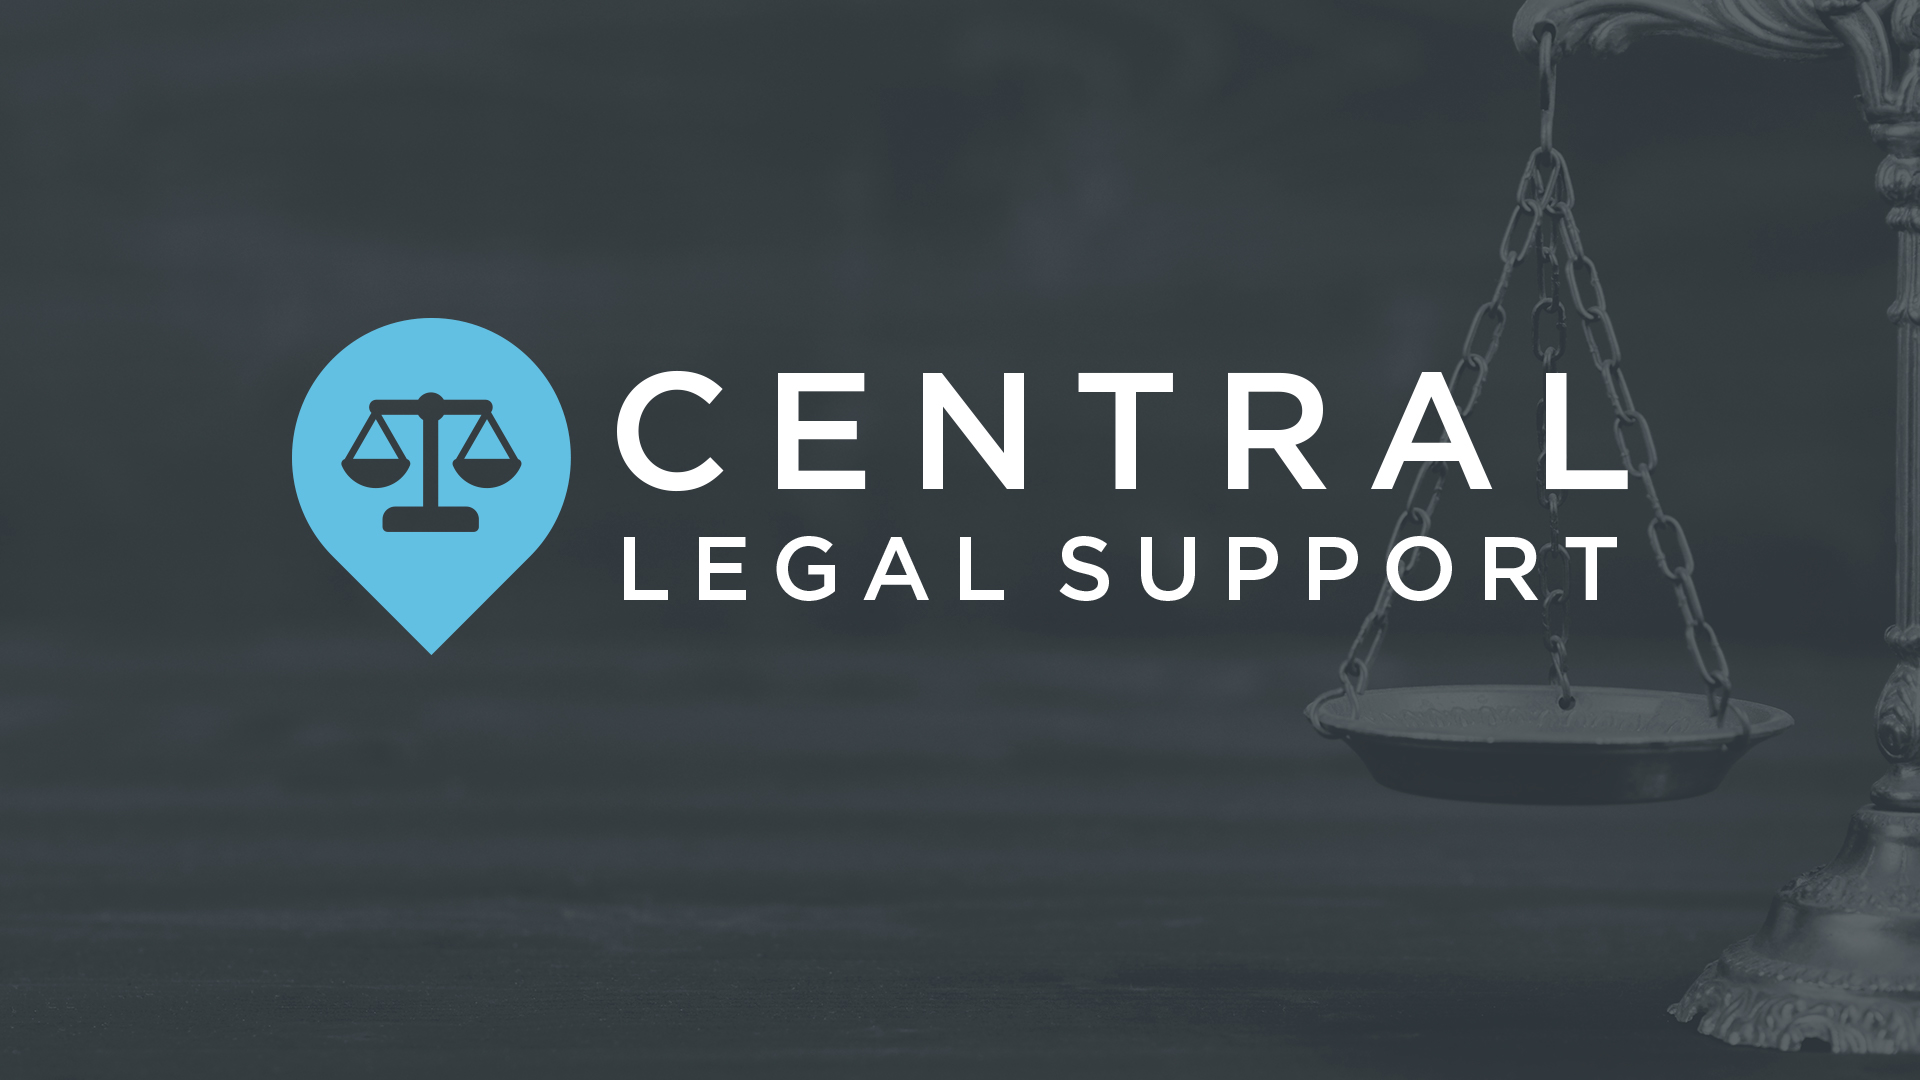 Central Legal Support